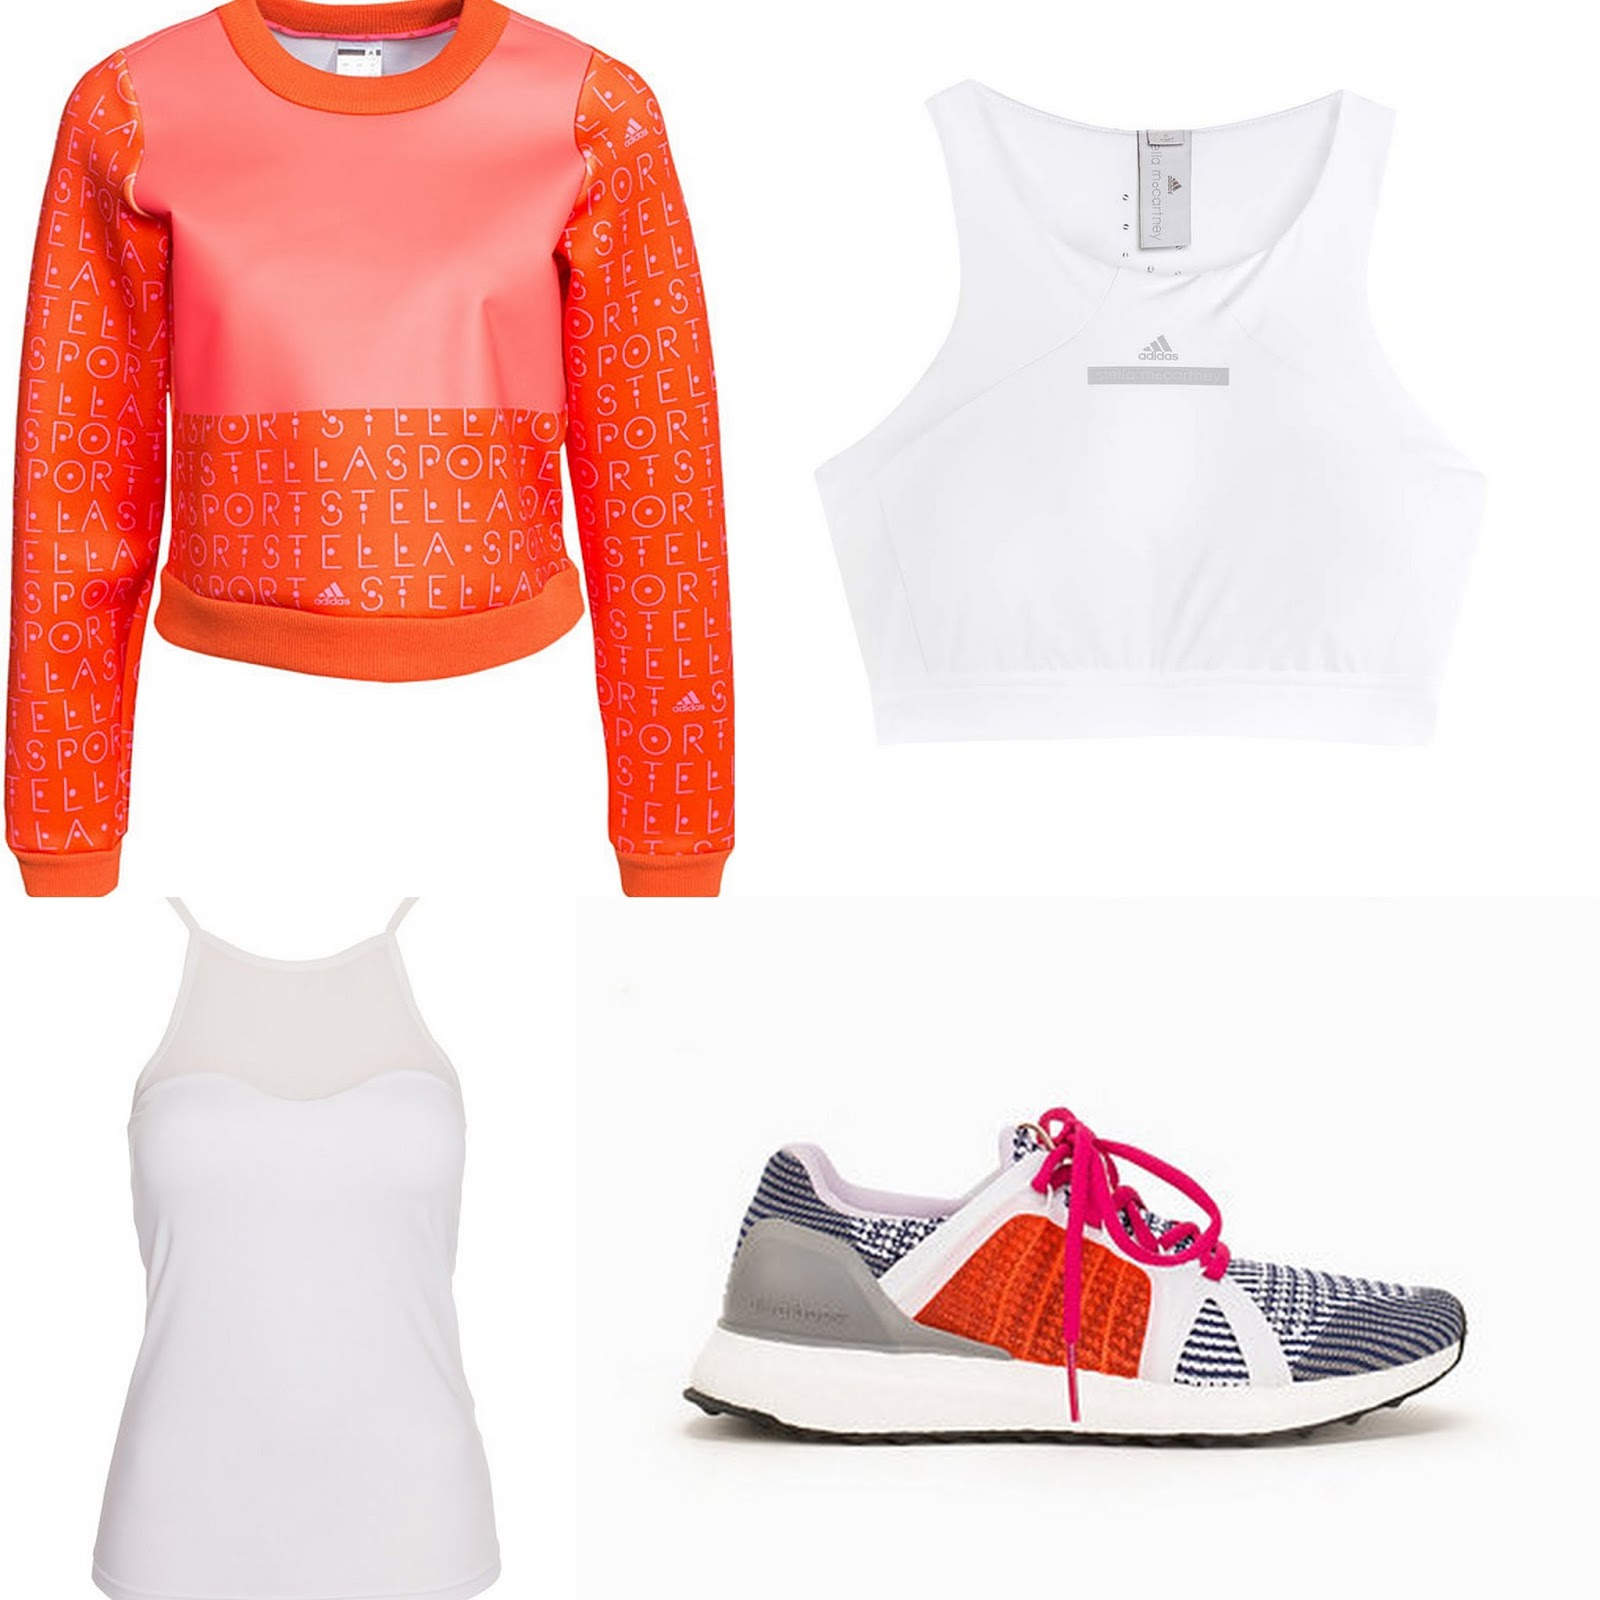 Sportswear / activewear bargains summer 2016